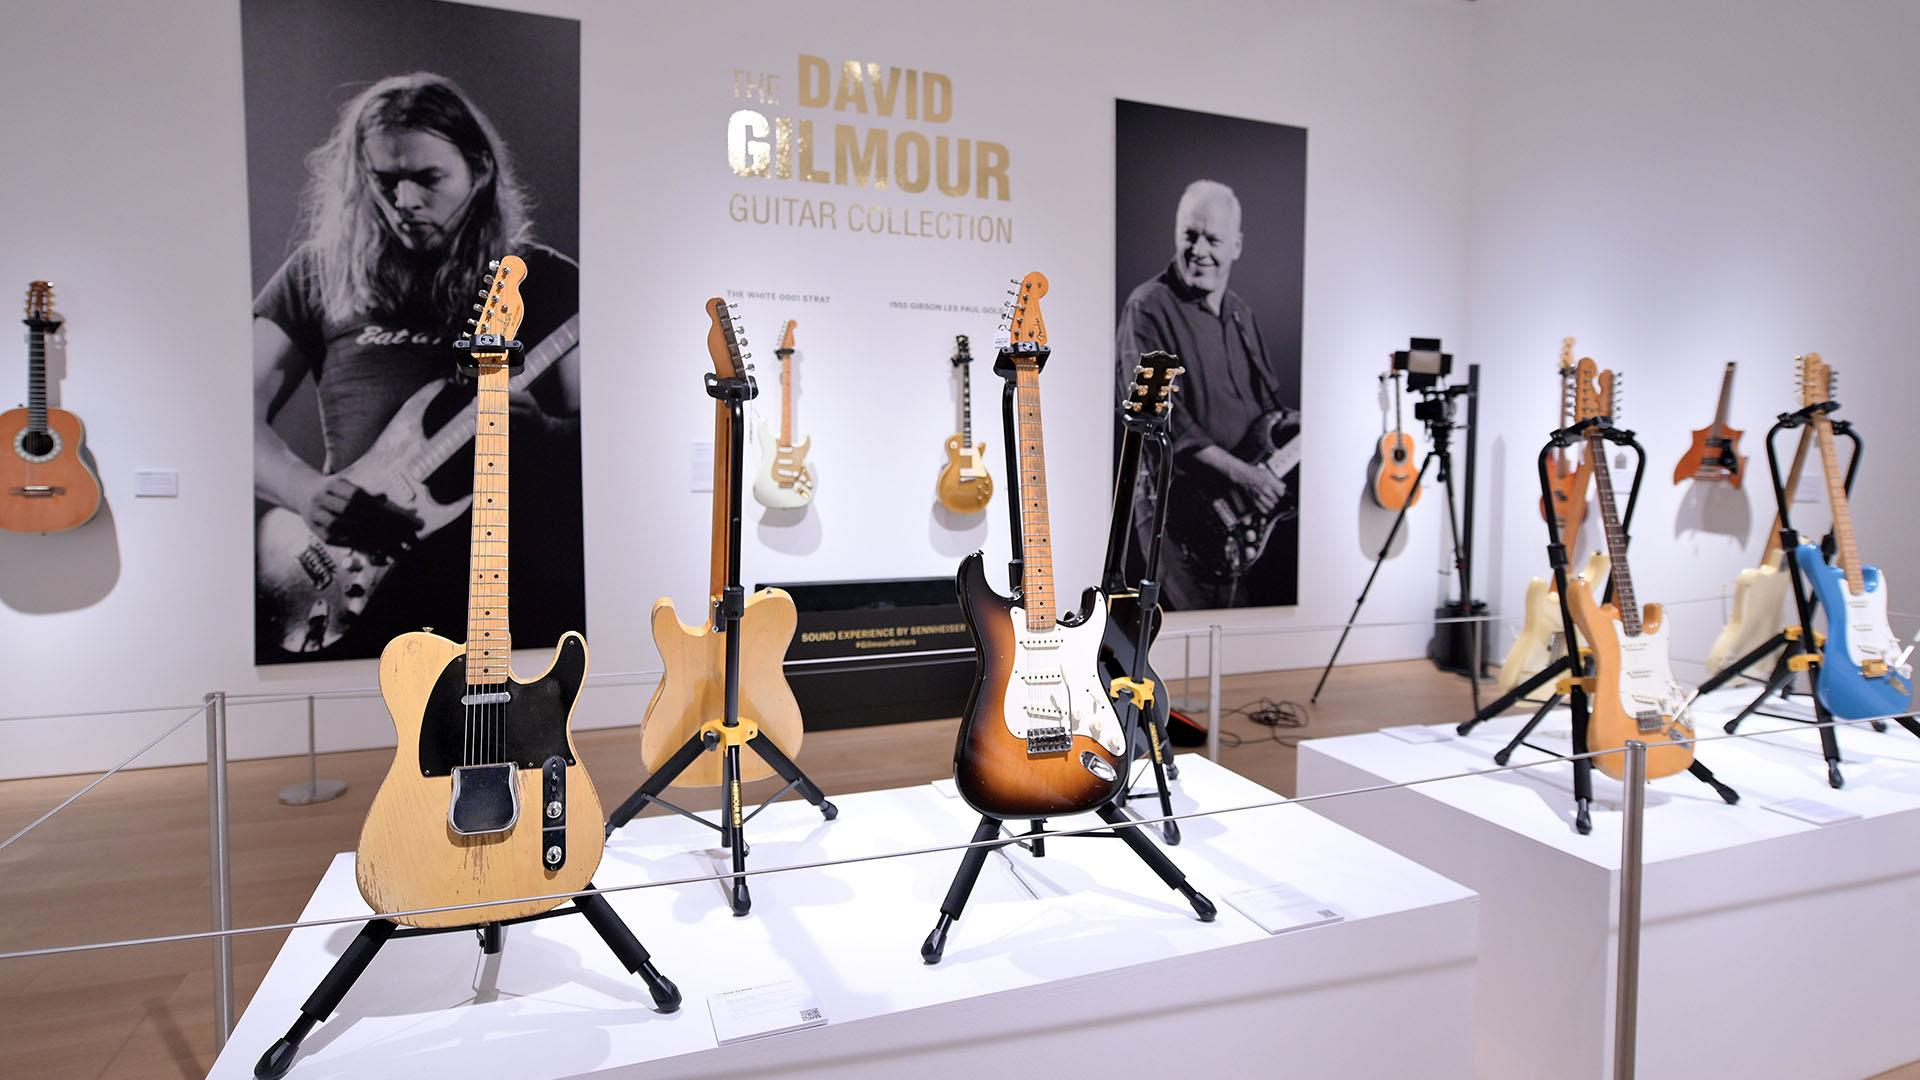 Pink Floyd guitarist David Gilmour sells guitar collection for climate change activists